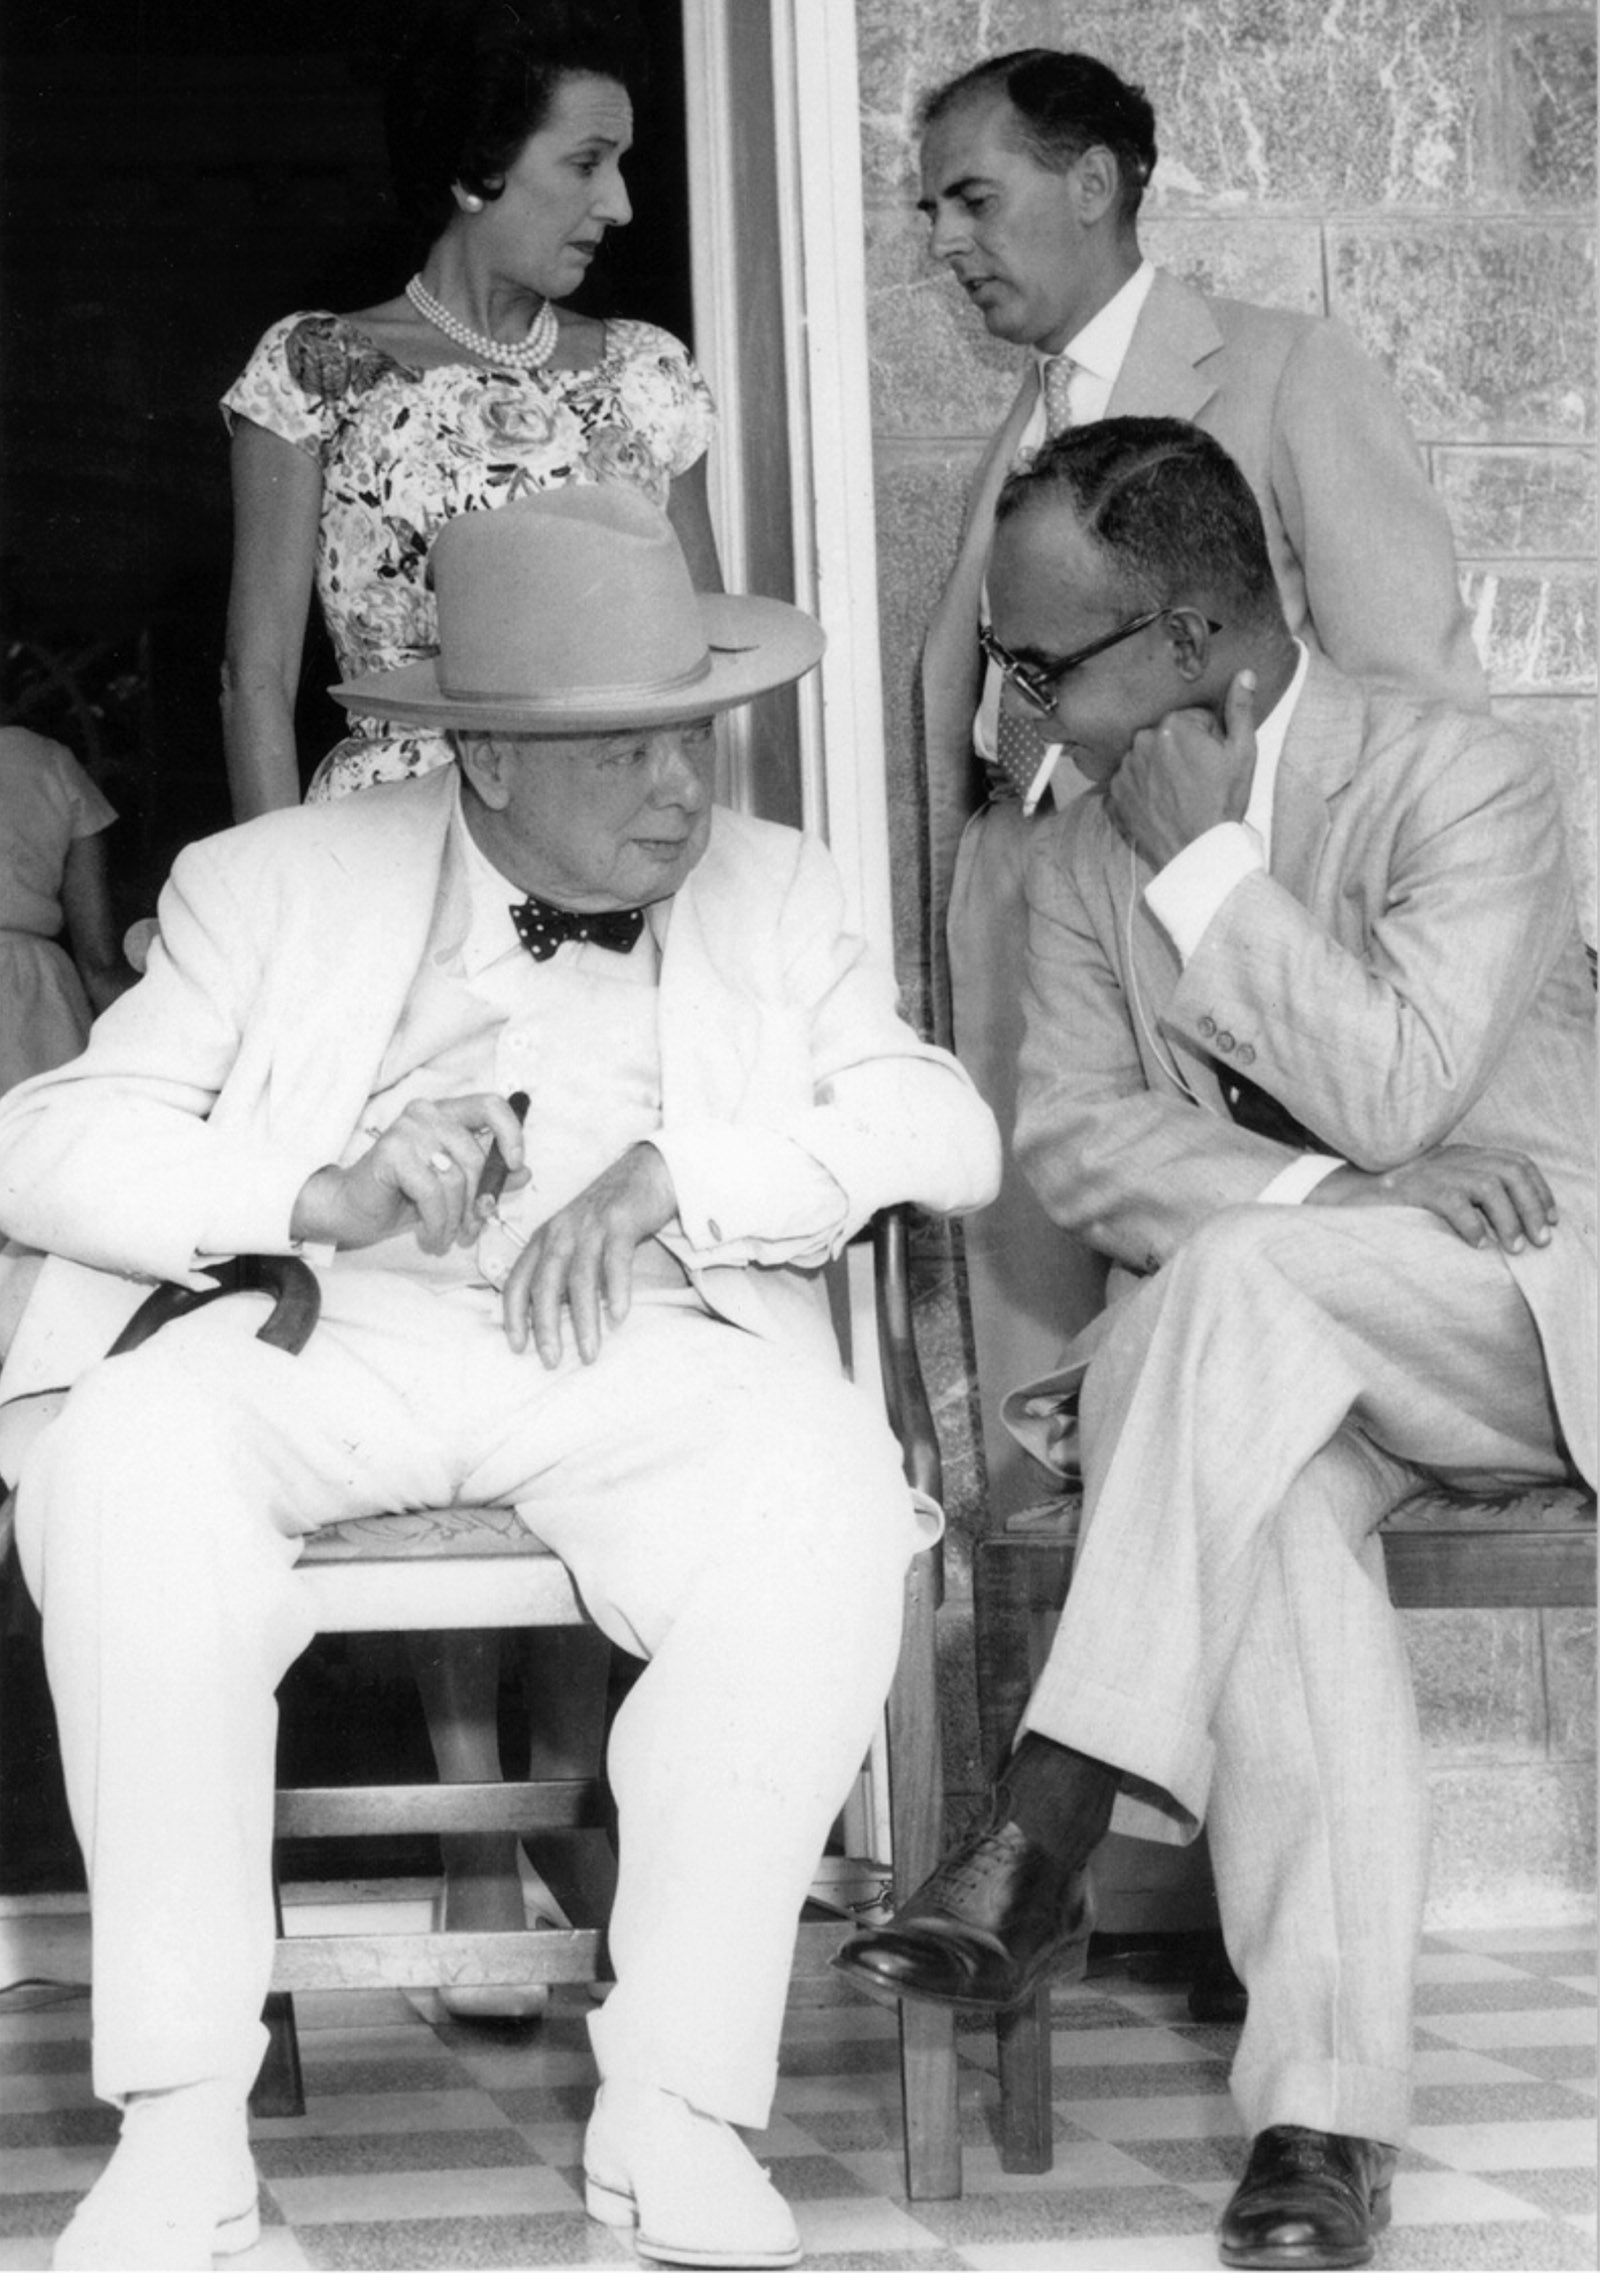 Winston Churchill, former prime minister of the United Kingdom, and Eric Williams, premier of Trinidad and Tobago